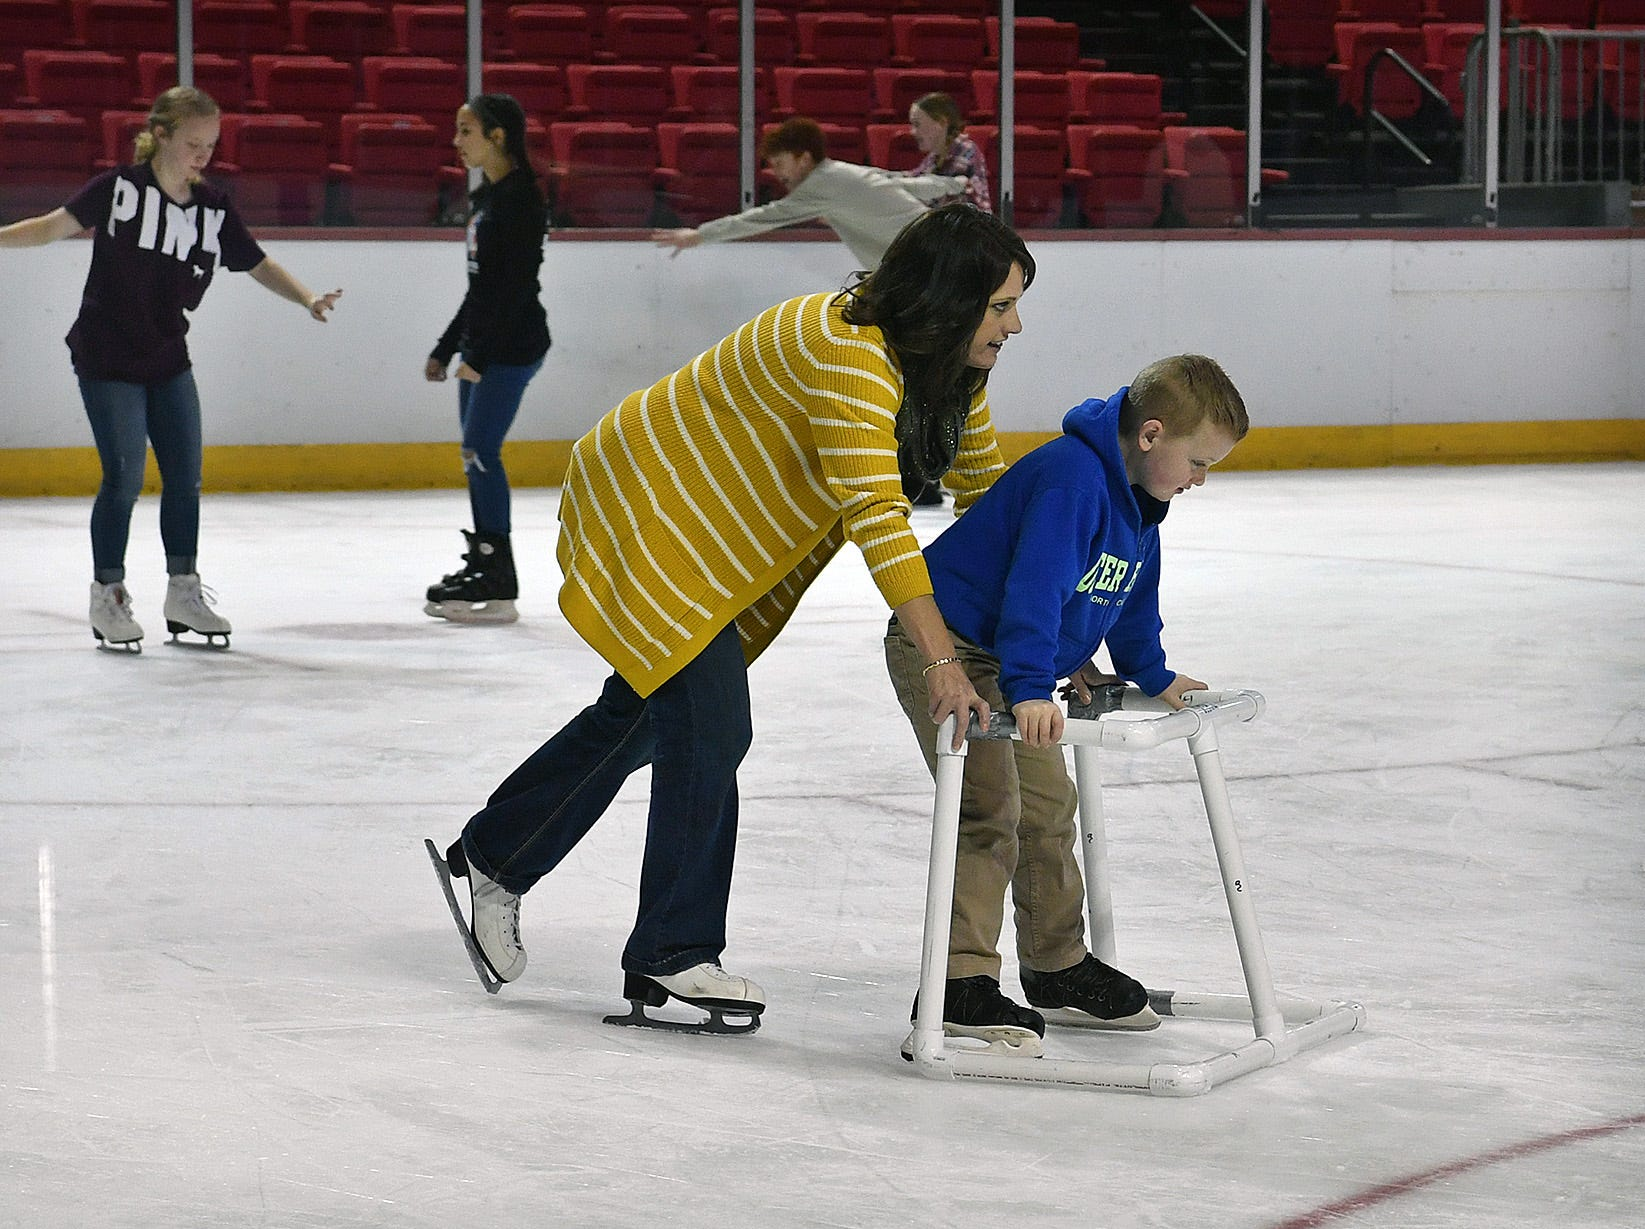 Less-experienced skaters took advantage of sliding support frames during the First Bank Open Skate event Friday afternoon at Key Yeager Coliseum.